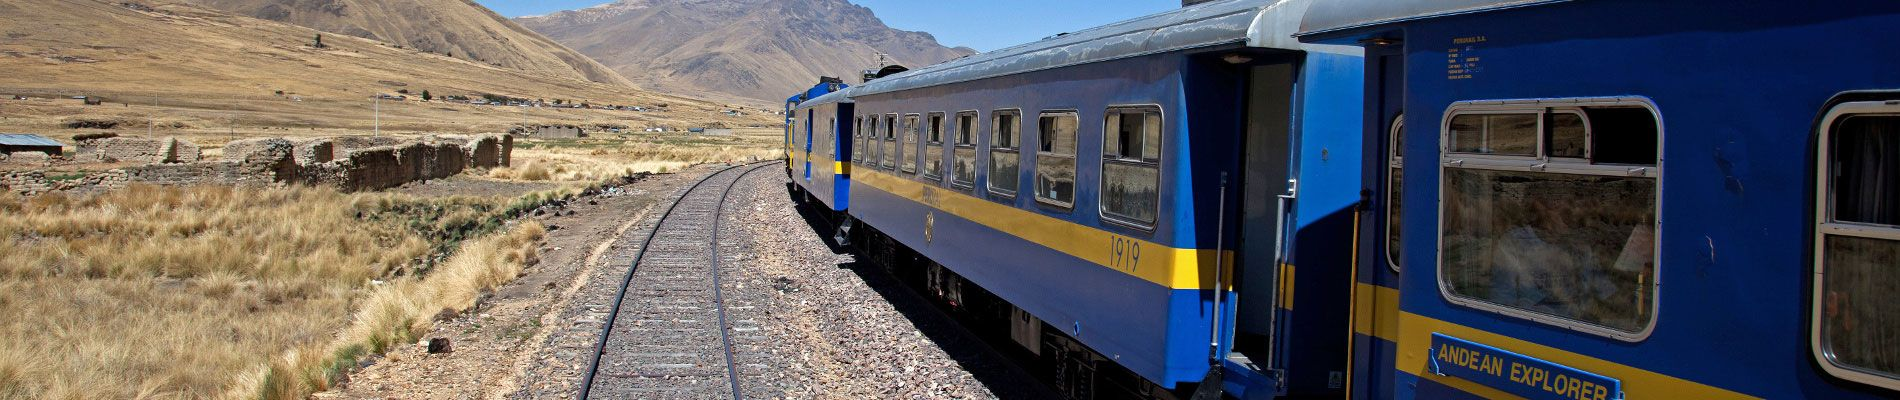 perou-train-des-andes-st